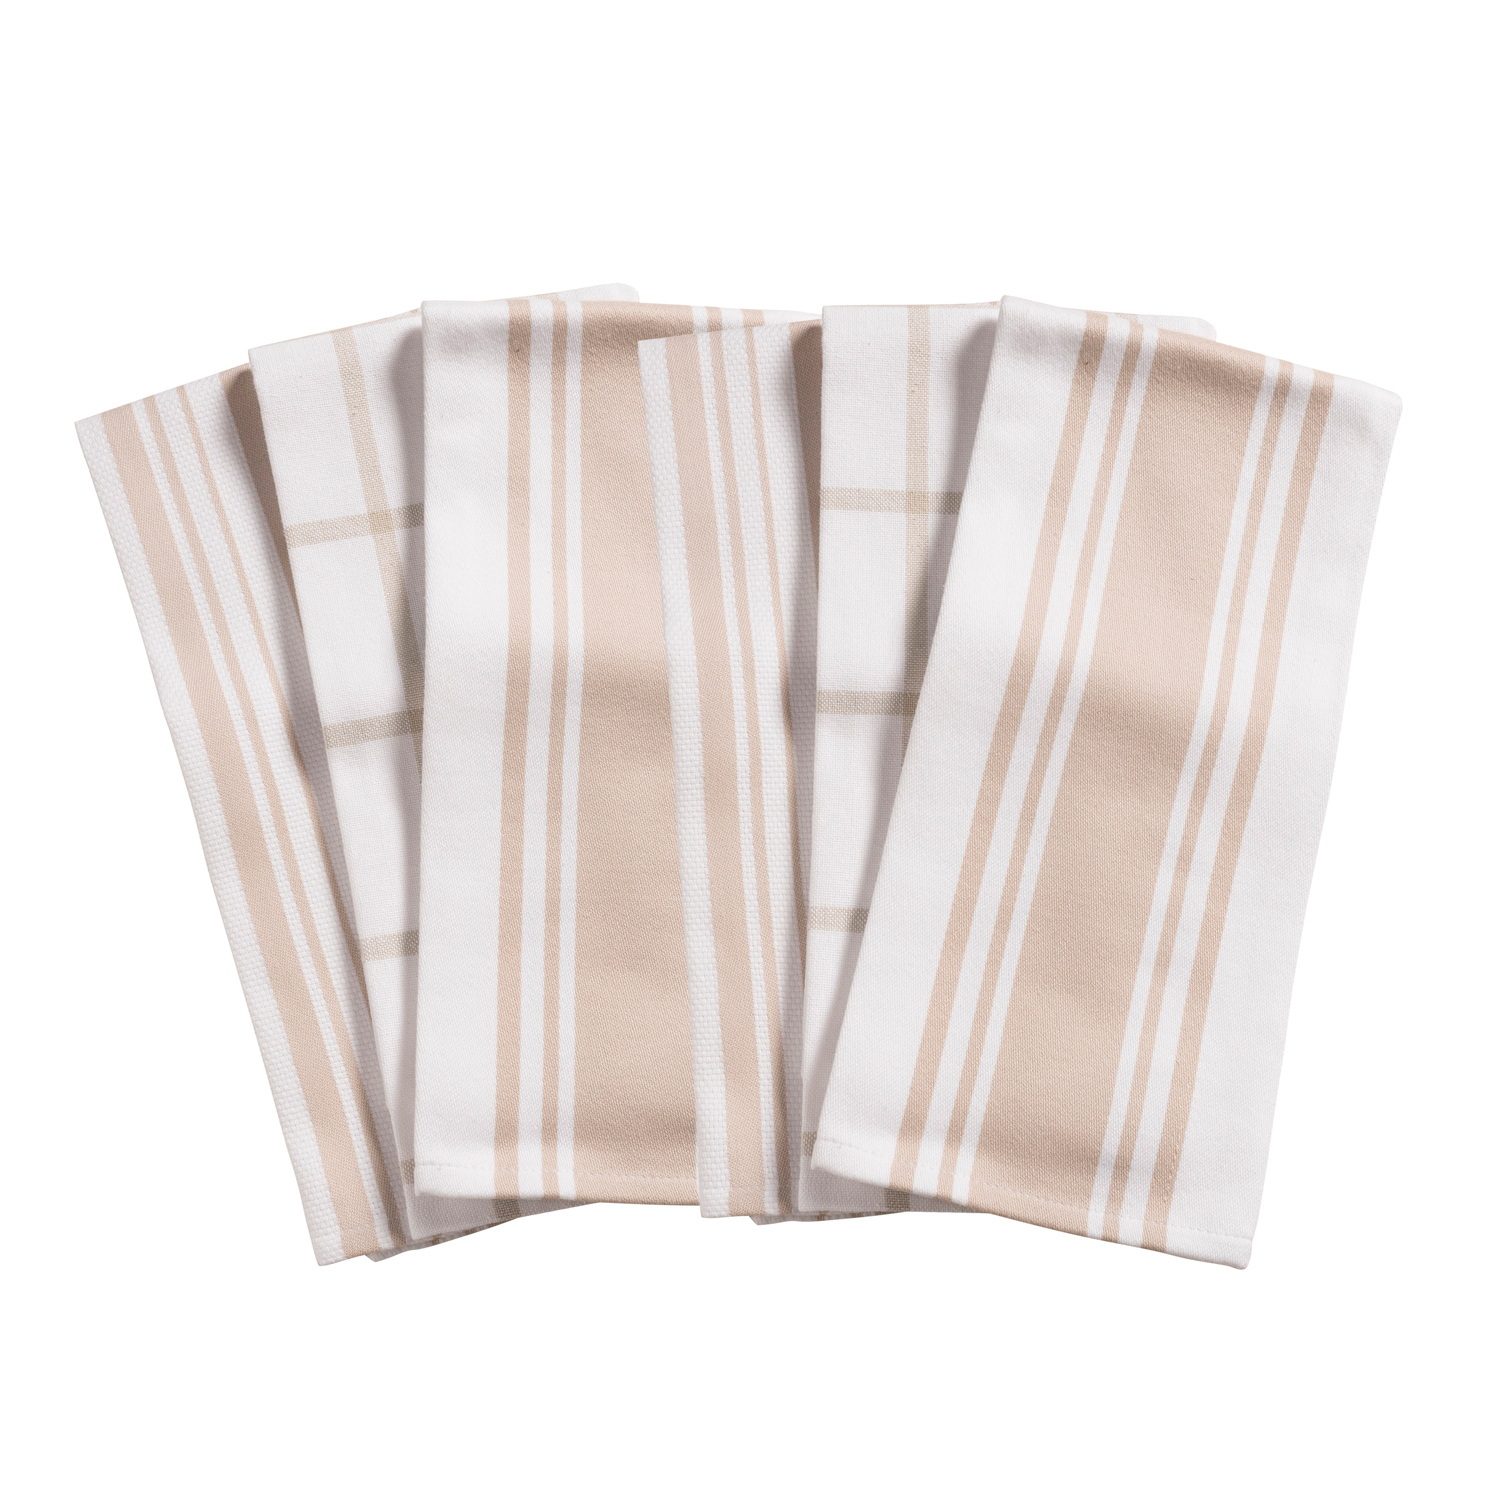 Oatmeal All Purpose Kitchen Towels Set of 6